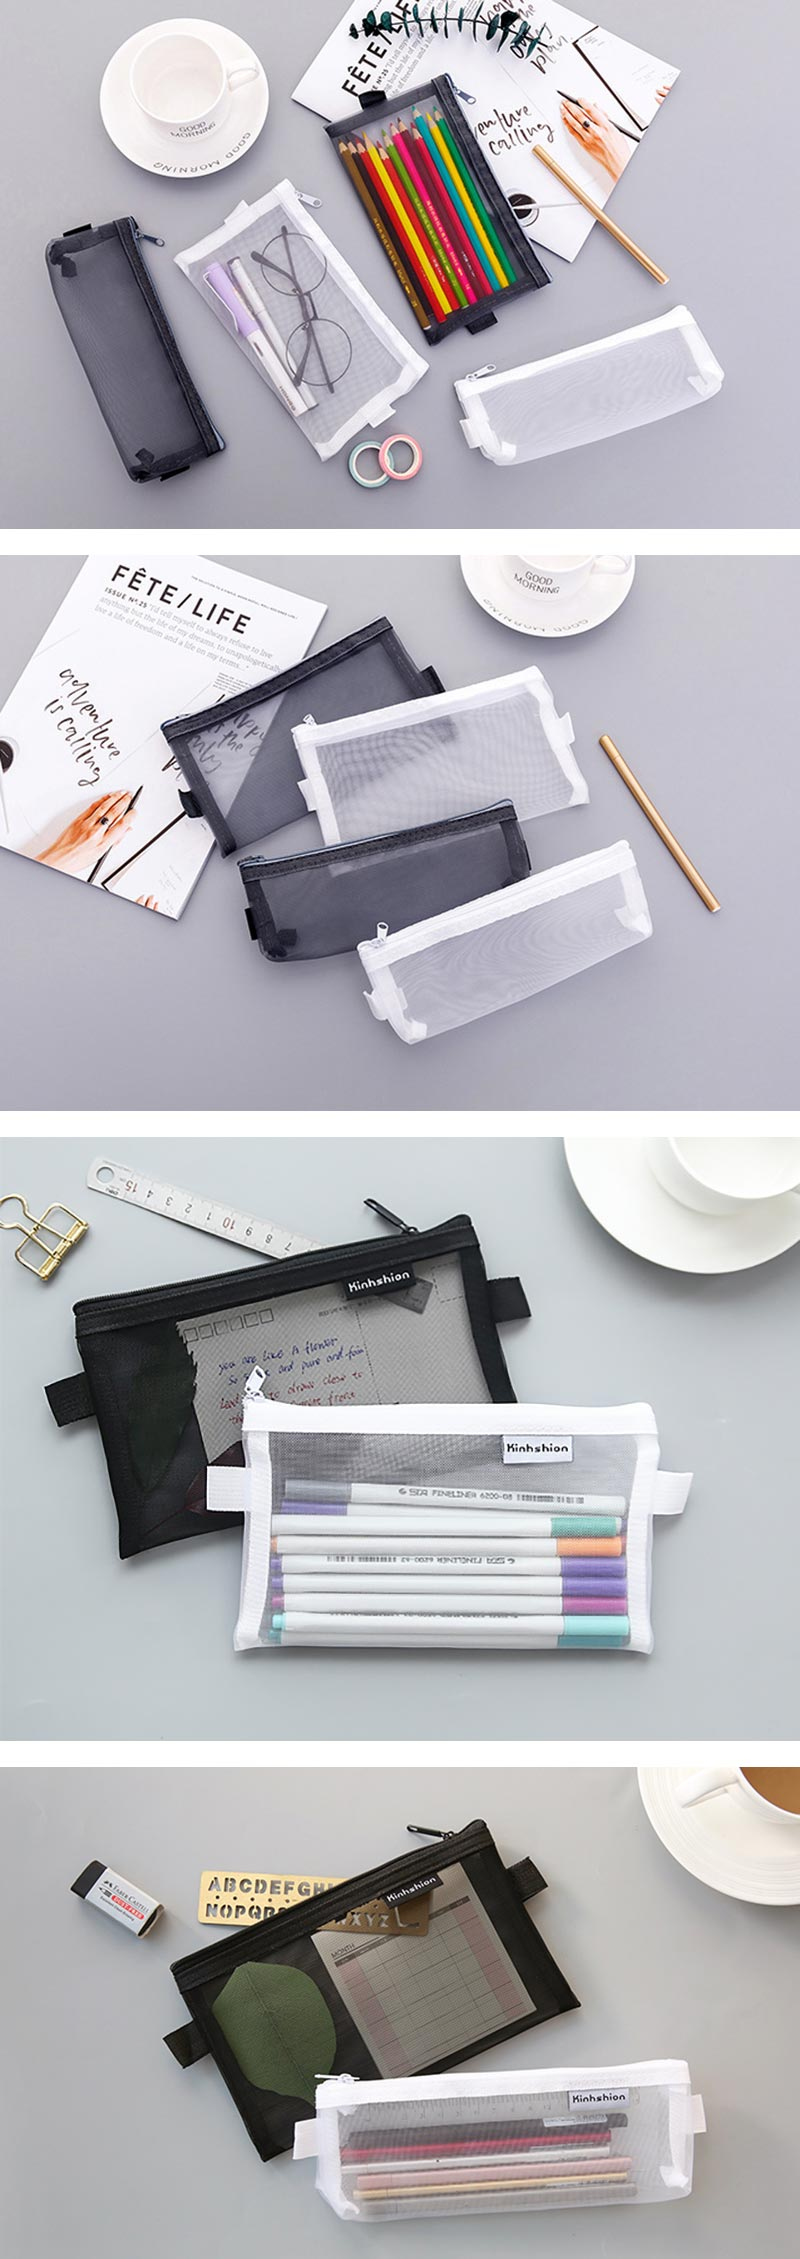 Transparent Mesh Zipper Pencil Case - Detail